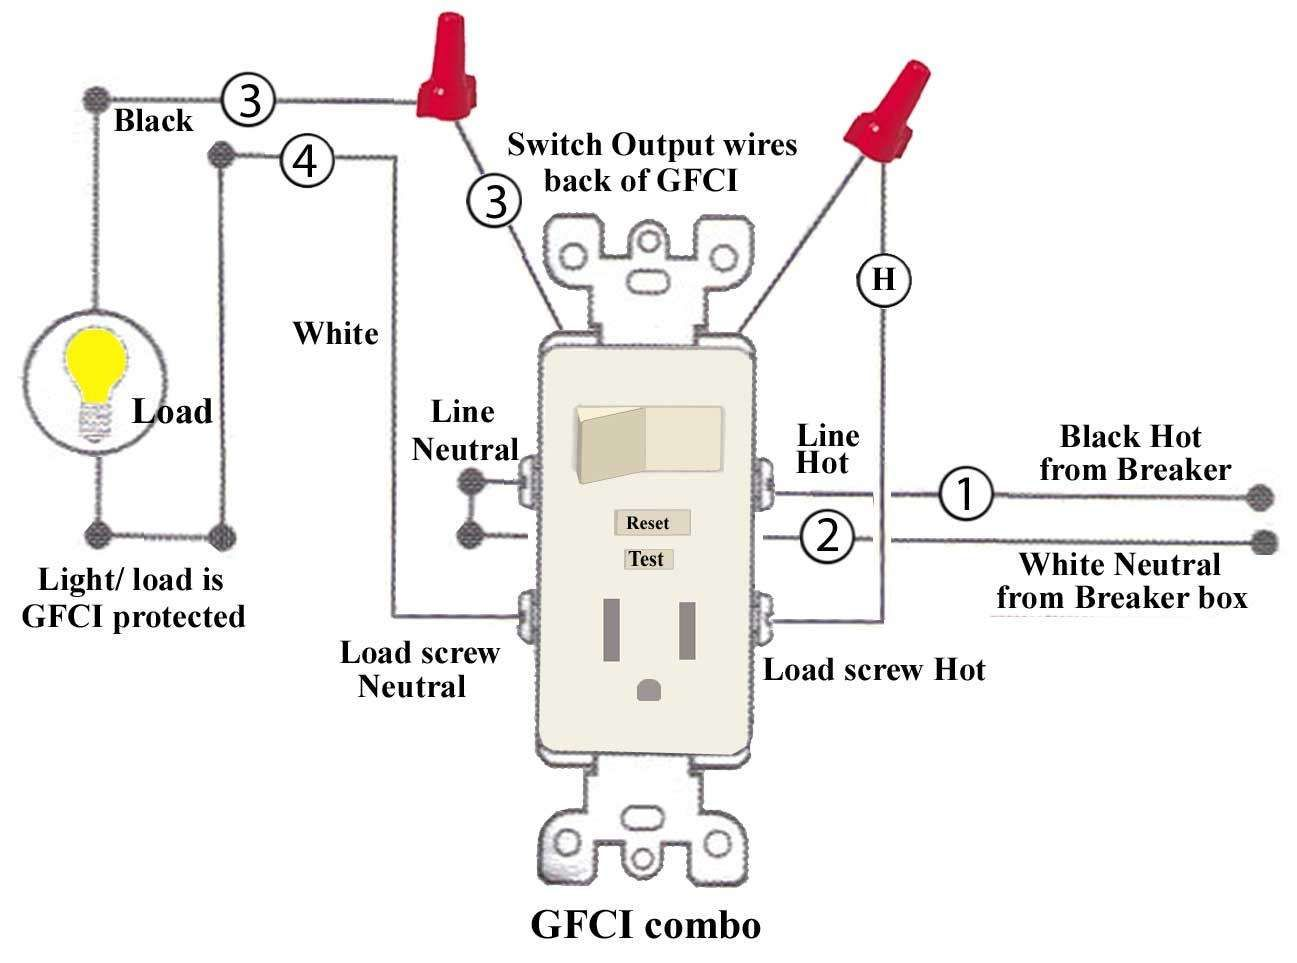 Wiring Diagram Outlets Beautiful Wiring Diagram Outlets Splendid Line Wiring Diagram Help Signalsbrake Light Code For Wire Switch Gfci Outlet Wiring